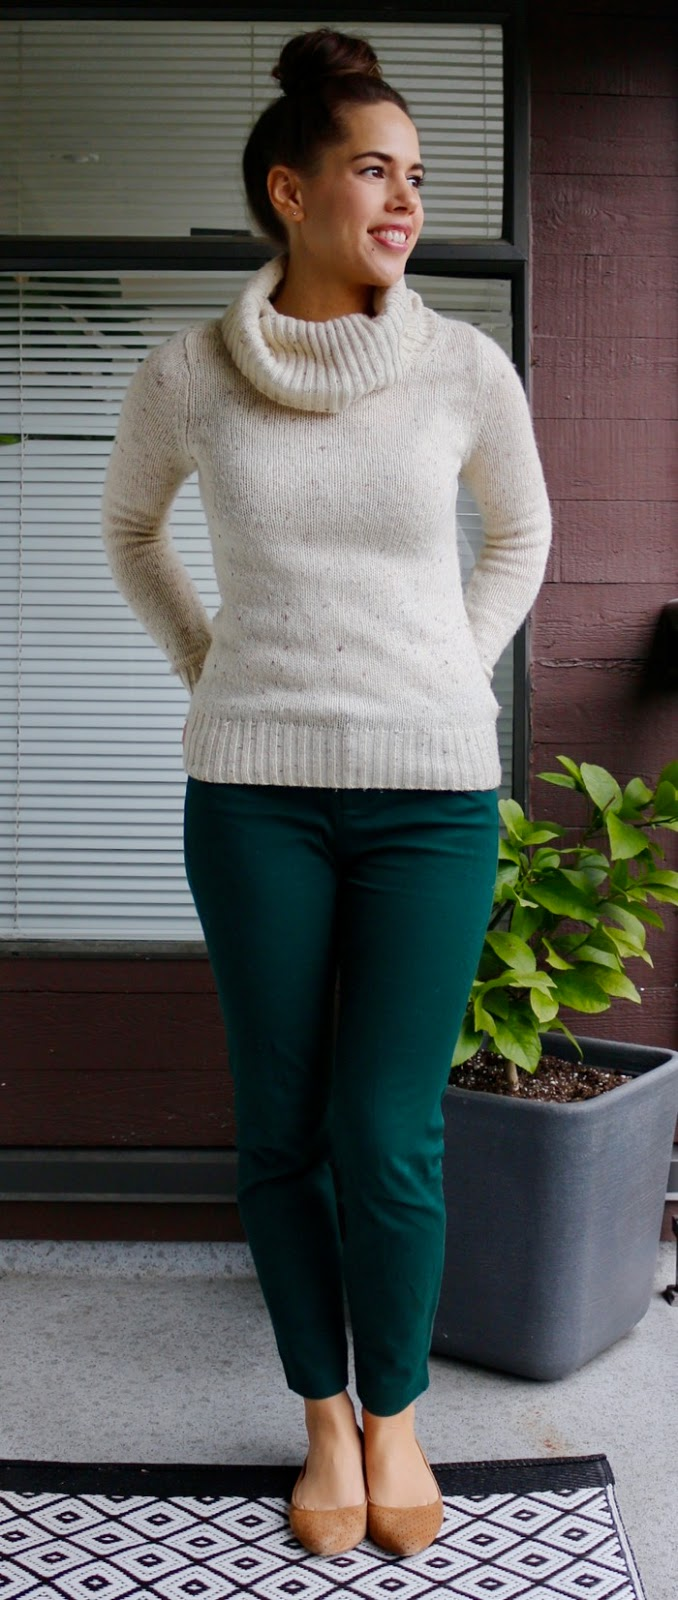 Jules in Flats - Cozy Turtleneck Sweater Outfit